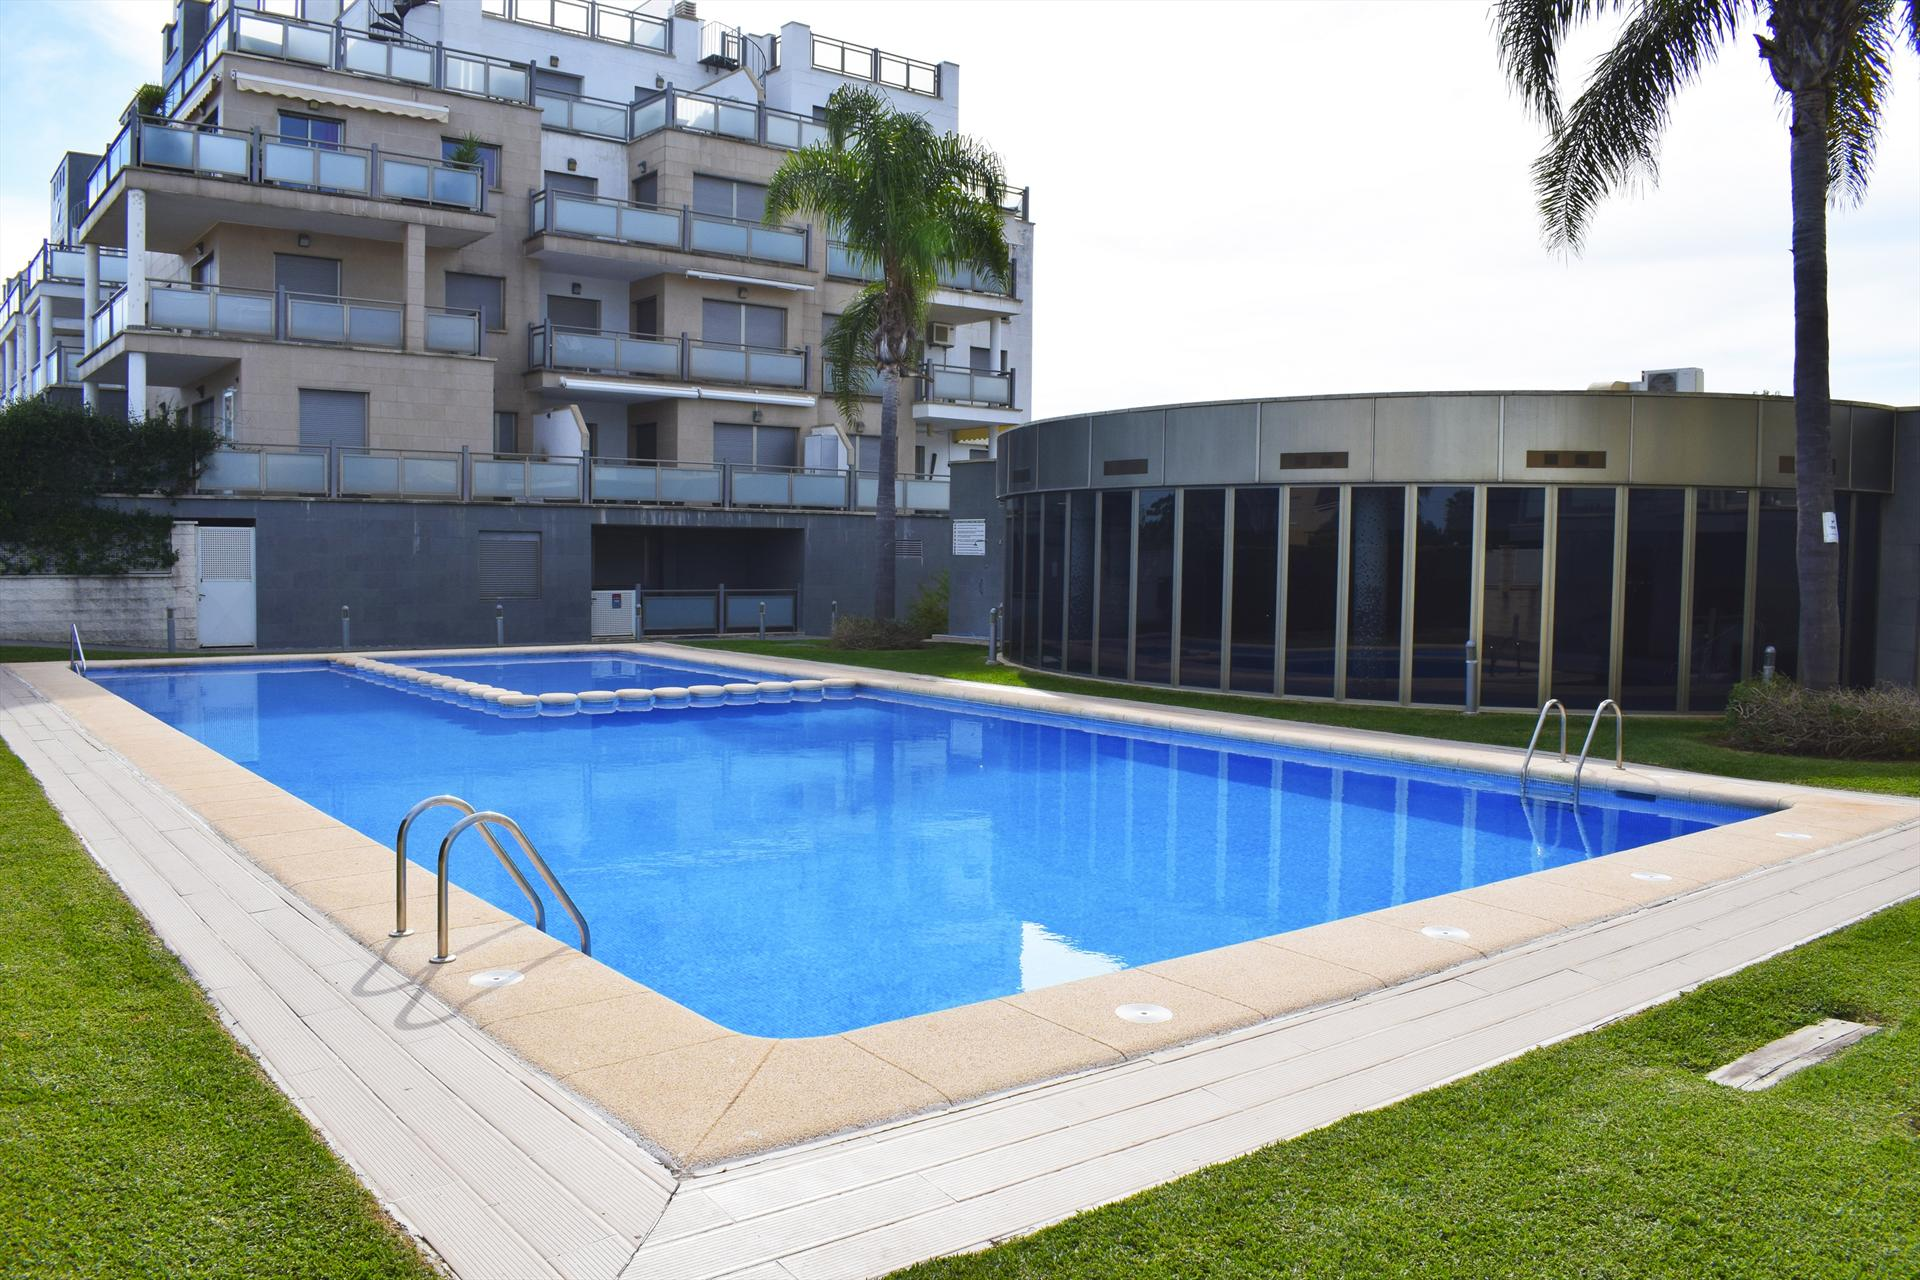 Cabagua San Fernando DUP814, Large and luxury apartment in Oliva, on the Costa Blanca, Spain  with communal pool for 8 persons.....